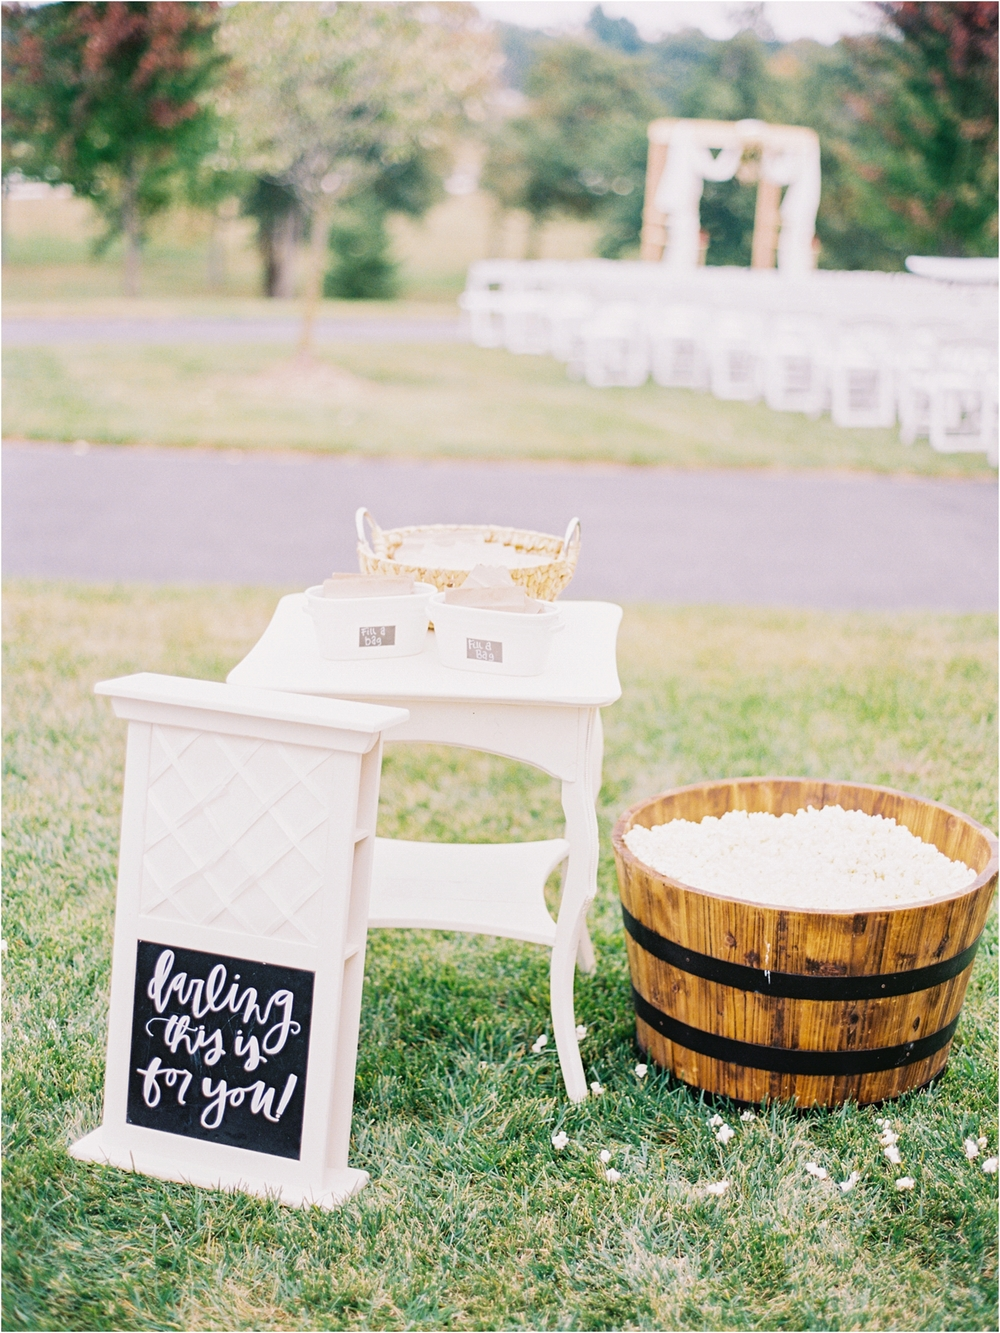 Springfield MO Wedding Ideas - Jordan Brittley Photography (www.jordanbrittley.com) // Serve Popcorn at your wedding!